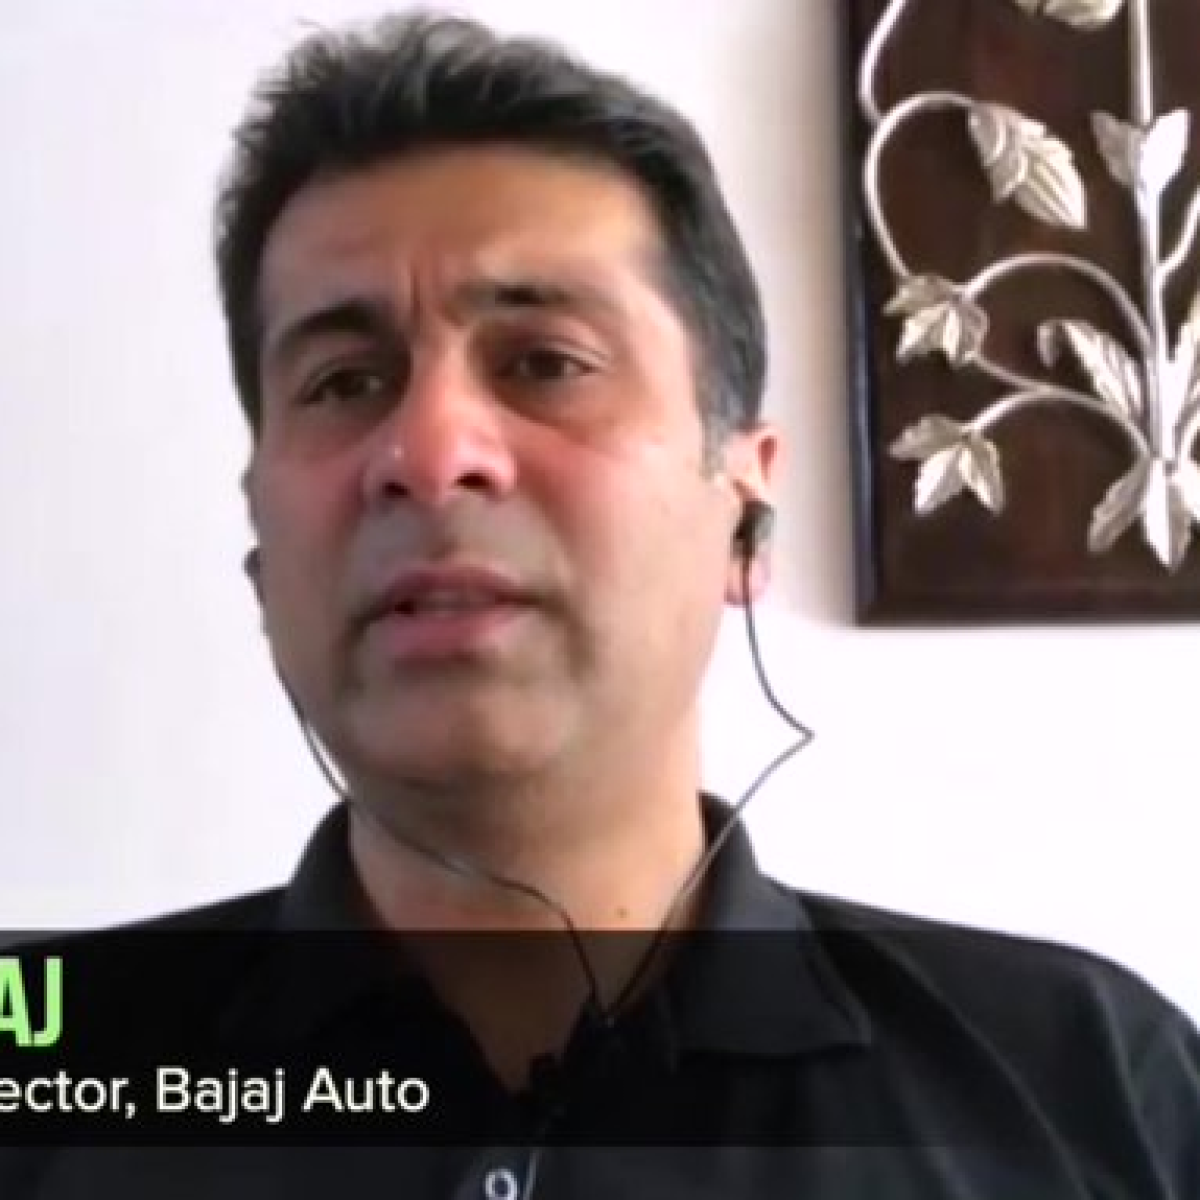 Bajaj Auto MD wants a clear narrative from the top to take the fear of coronavirus out of the people's mind